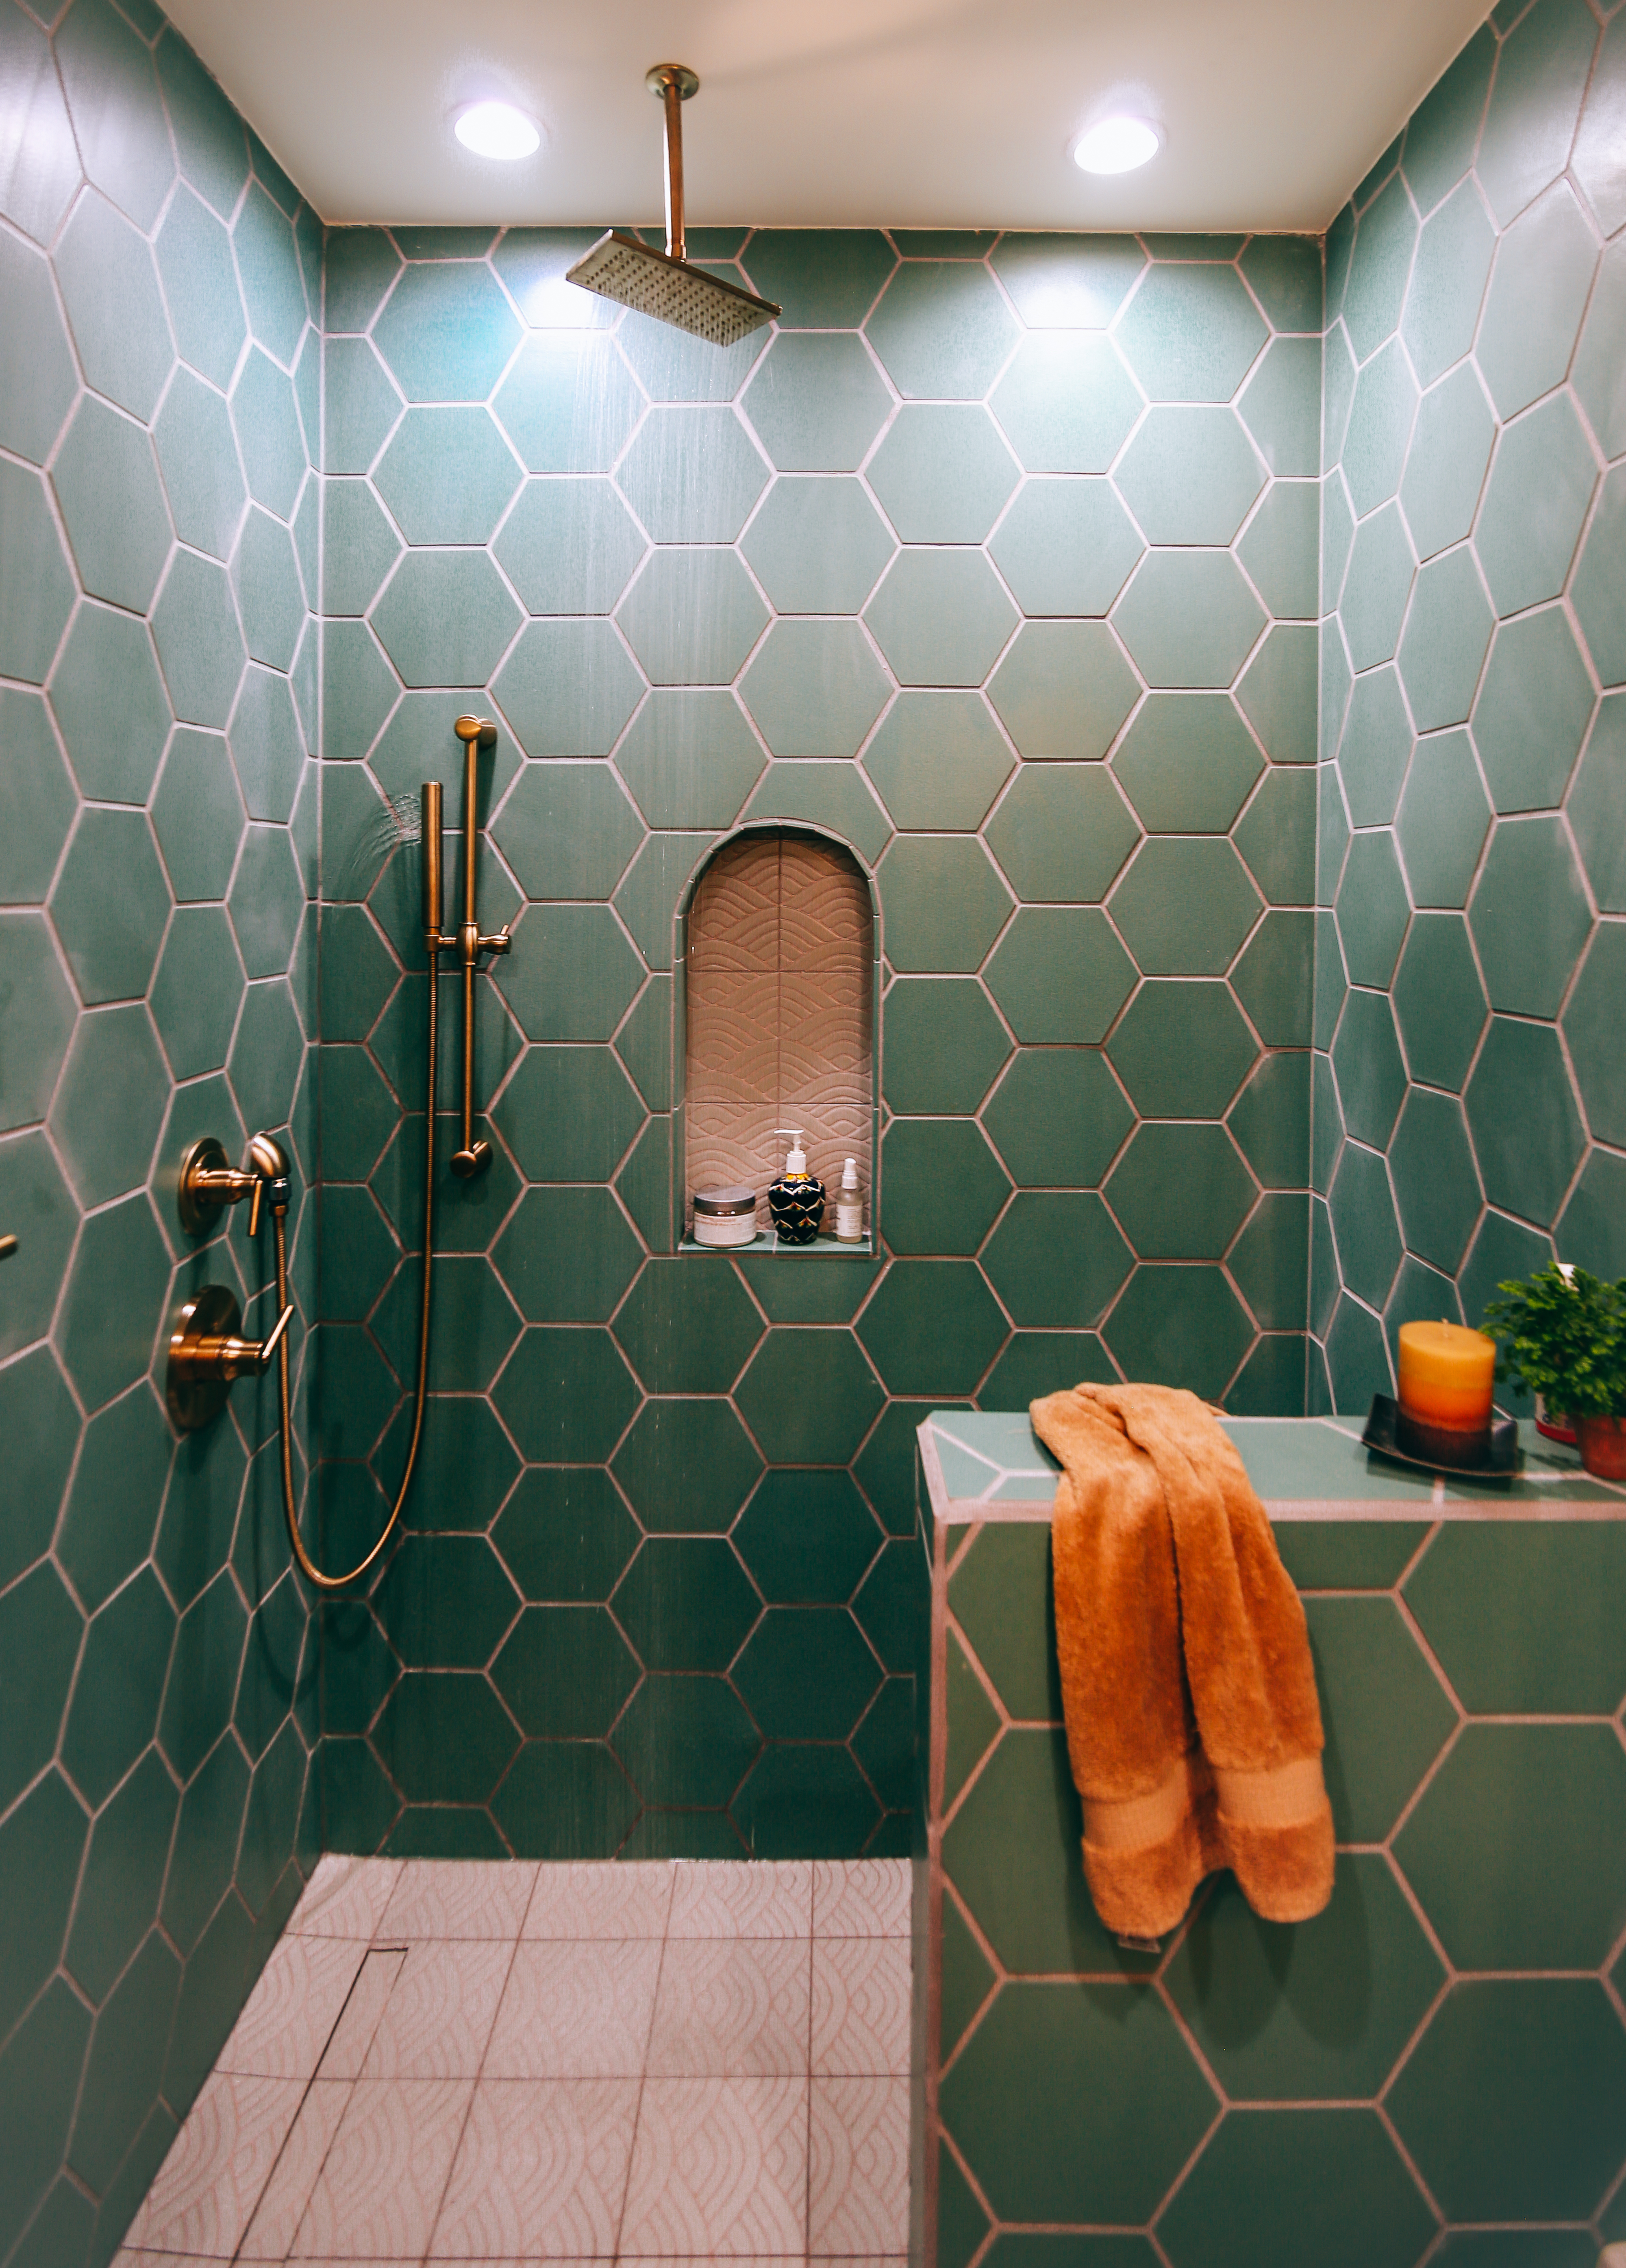 2018_Q3_image_residential_influencer_full_rights_Justina-Faith-Blakeney_parents_condo_guest_bathroom_shower_pony_wall_tile_hexagon_8_tidewater_floor_handpainted_summit_neutral_motif_arched_niche_full_2.jpg?mtime=20181008100049#asset:420125